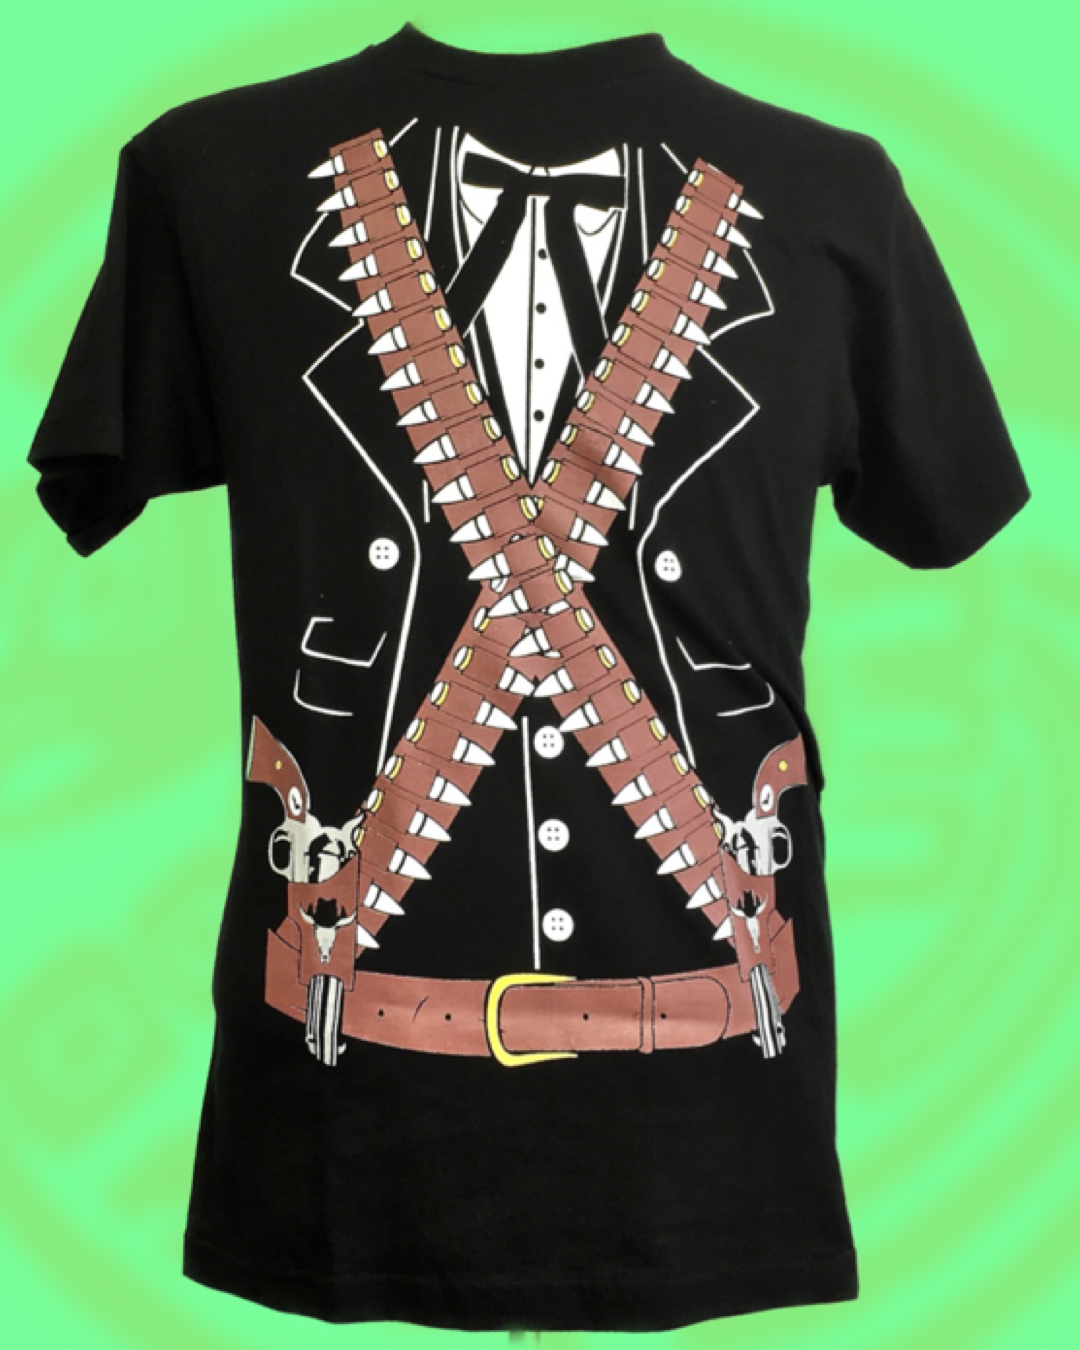 Mexican revolution guerrillero inspired print on black crew neck tee